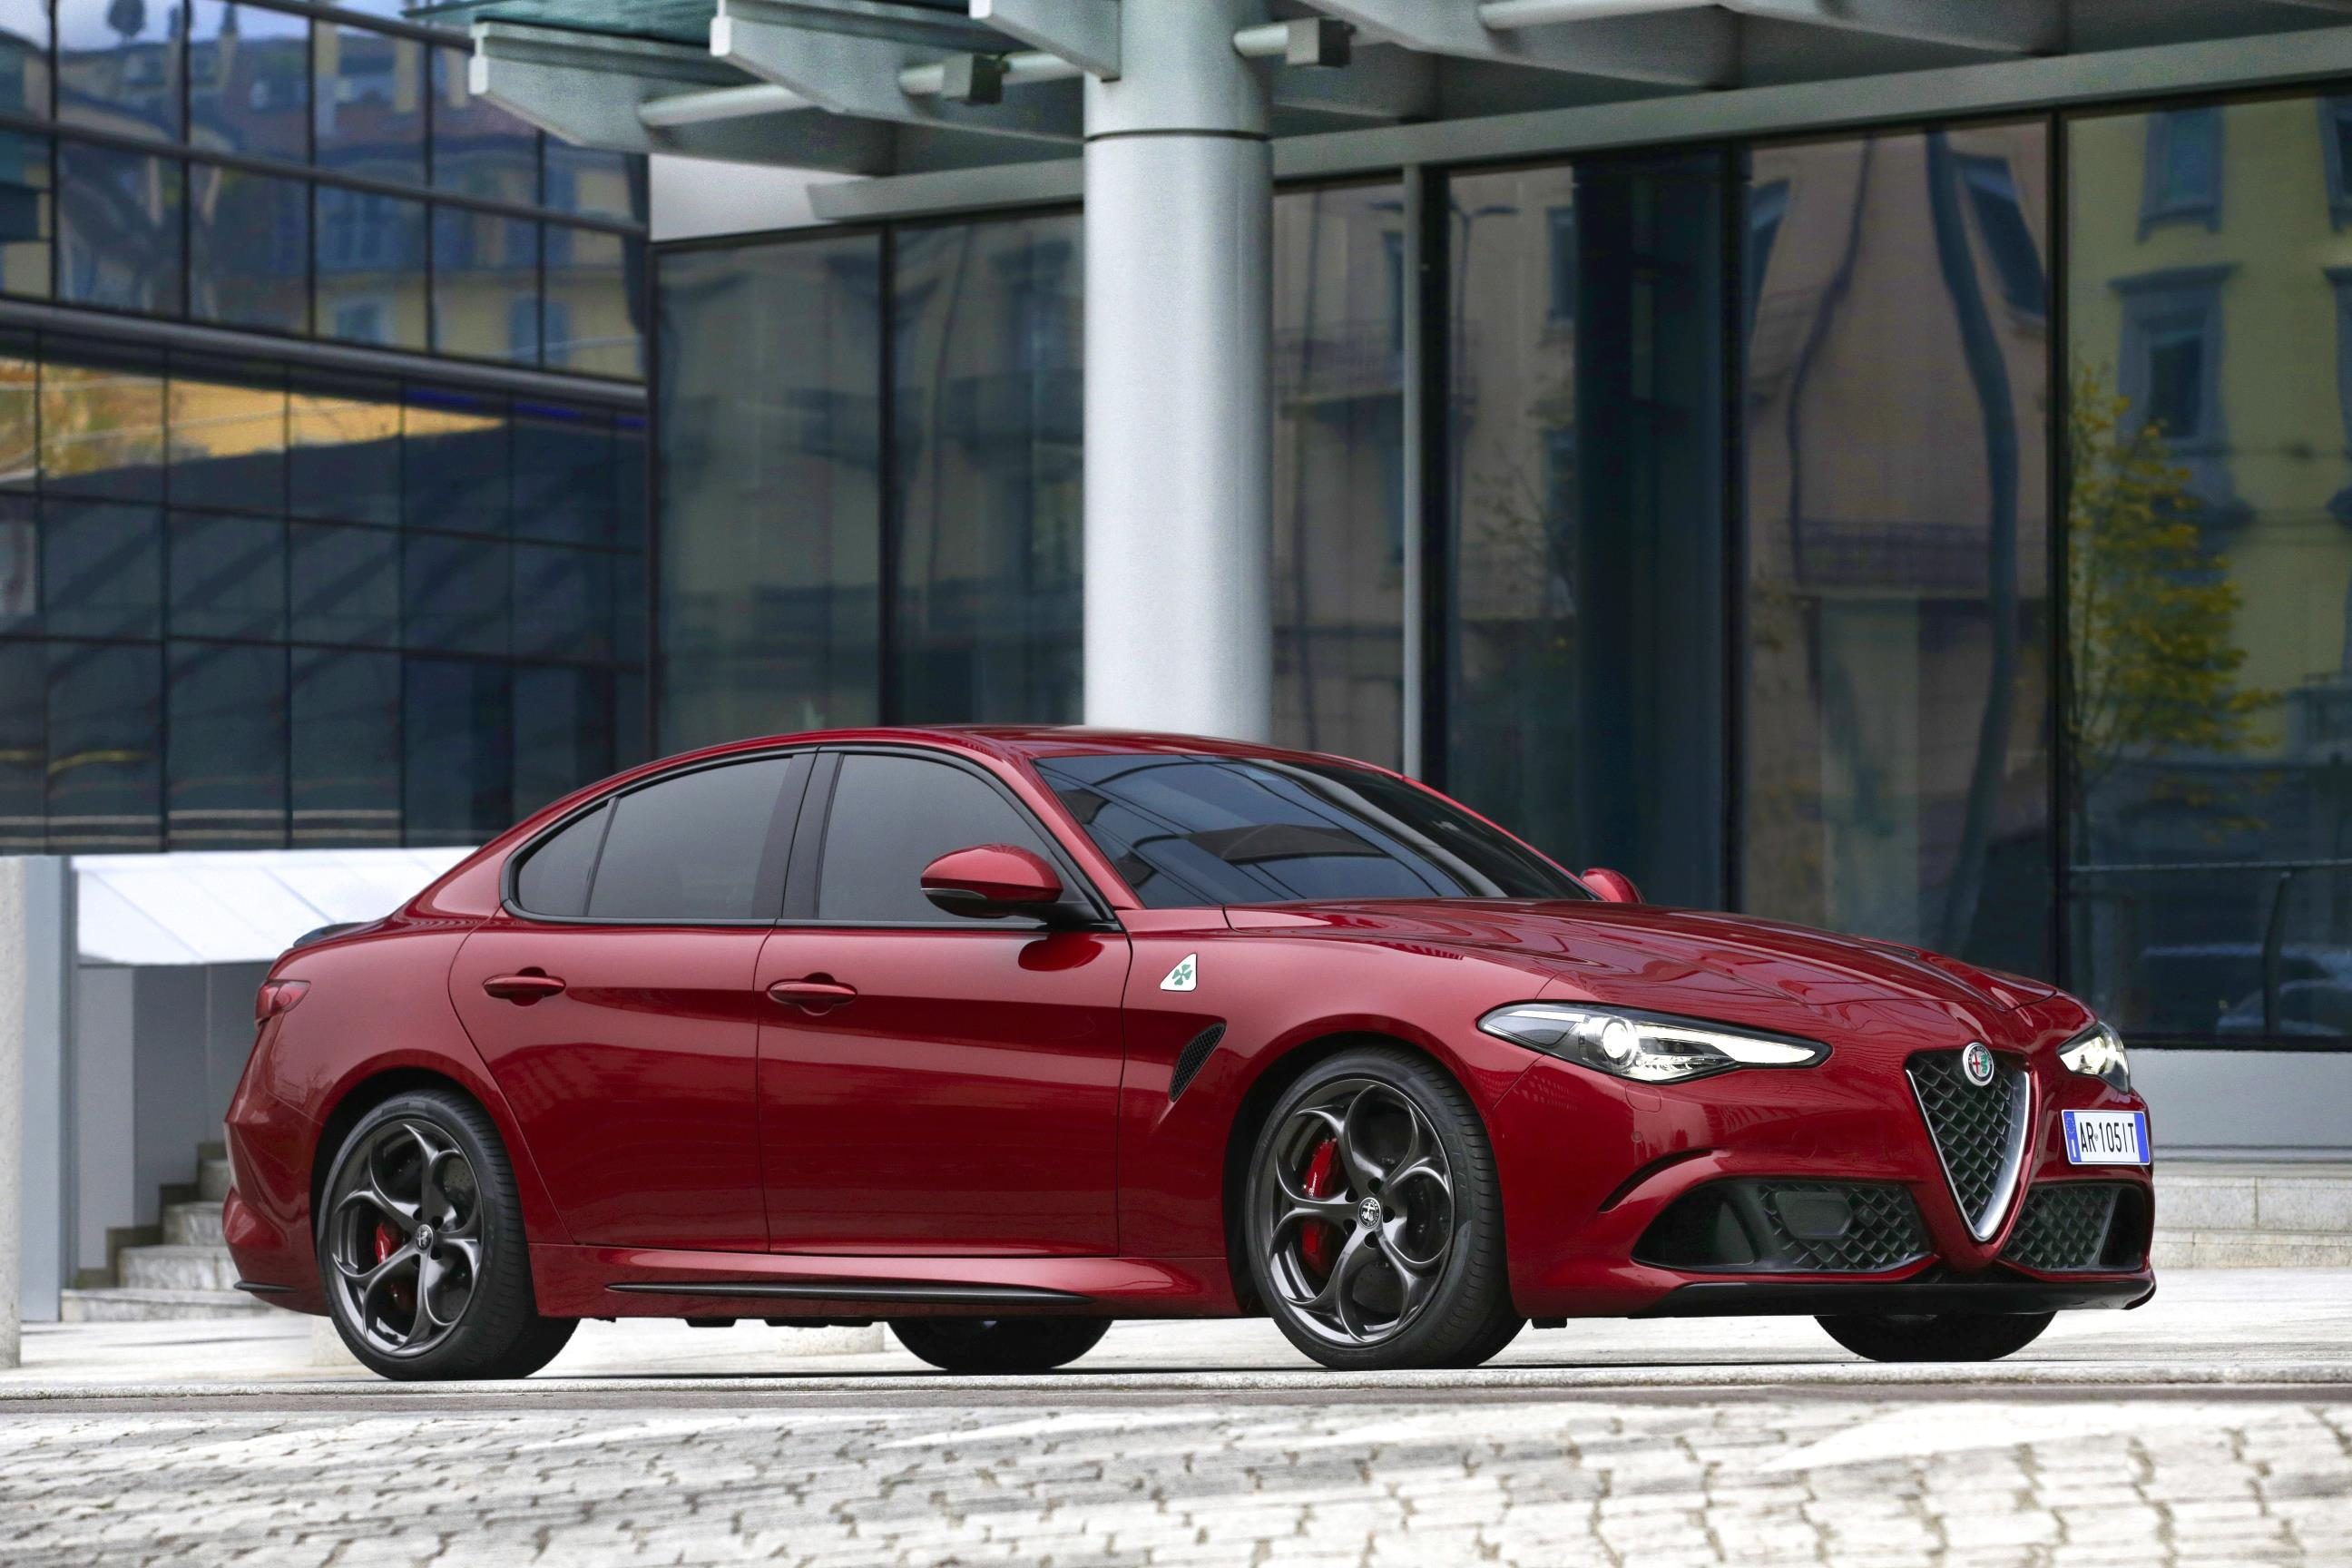 ALFA ROMEO GIULIA QUADRIFOGLIO UK PRICING ANNOUNCE MyAutoWorldcom - Lease alfa romeo